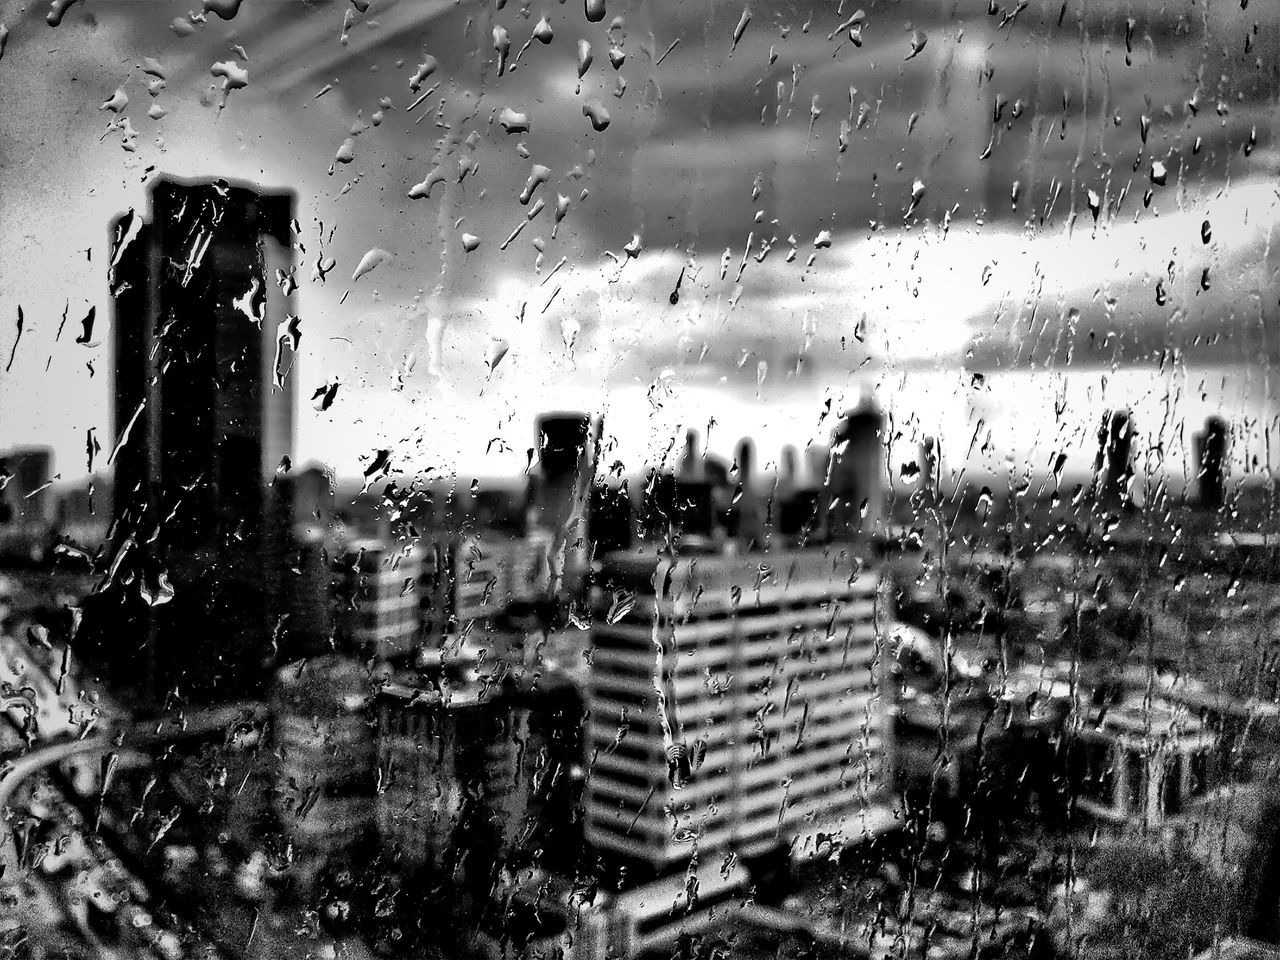 Rain behind the window ☔☁ Blackandwhite Nature Black & White